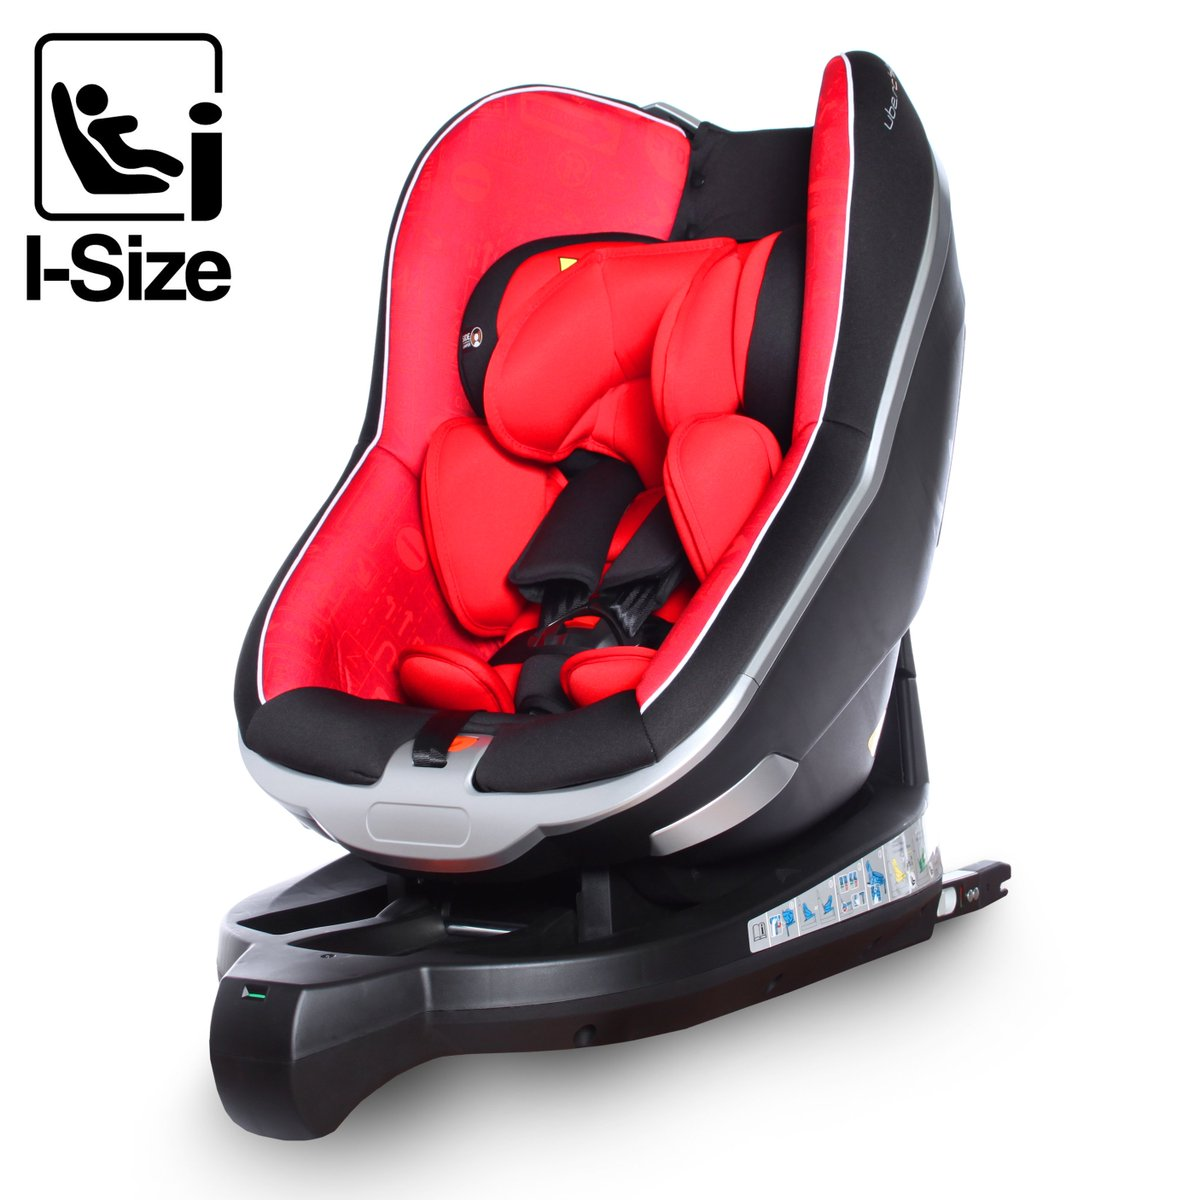 Infababy On Twitter Our New Extra Safe Uberchild I Size Group 01 Car Seat In Gorgeous City Red Colour Tco Z5hwQBtVm3 Carseat